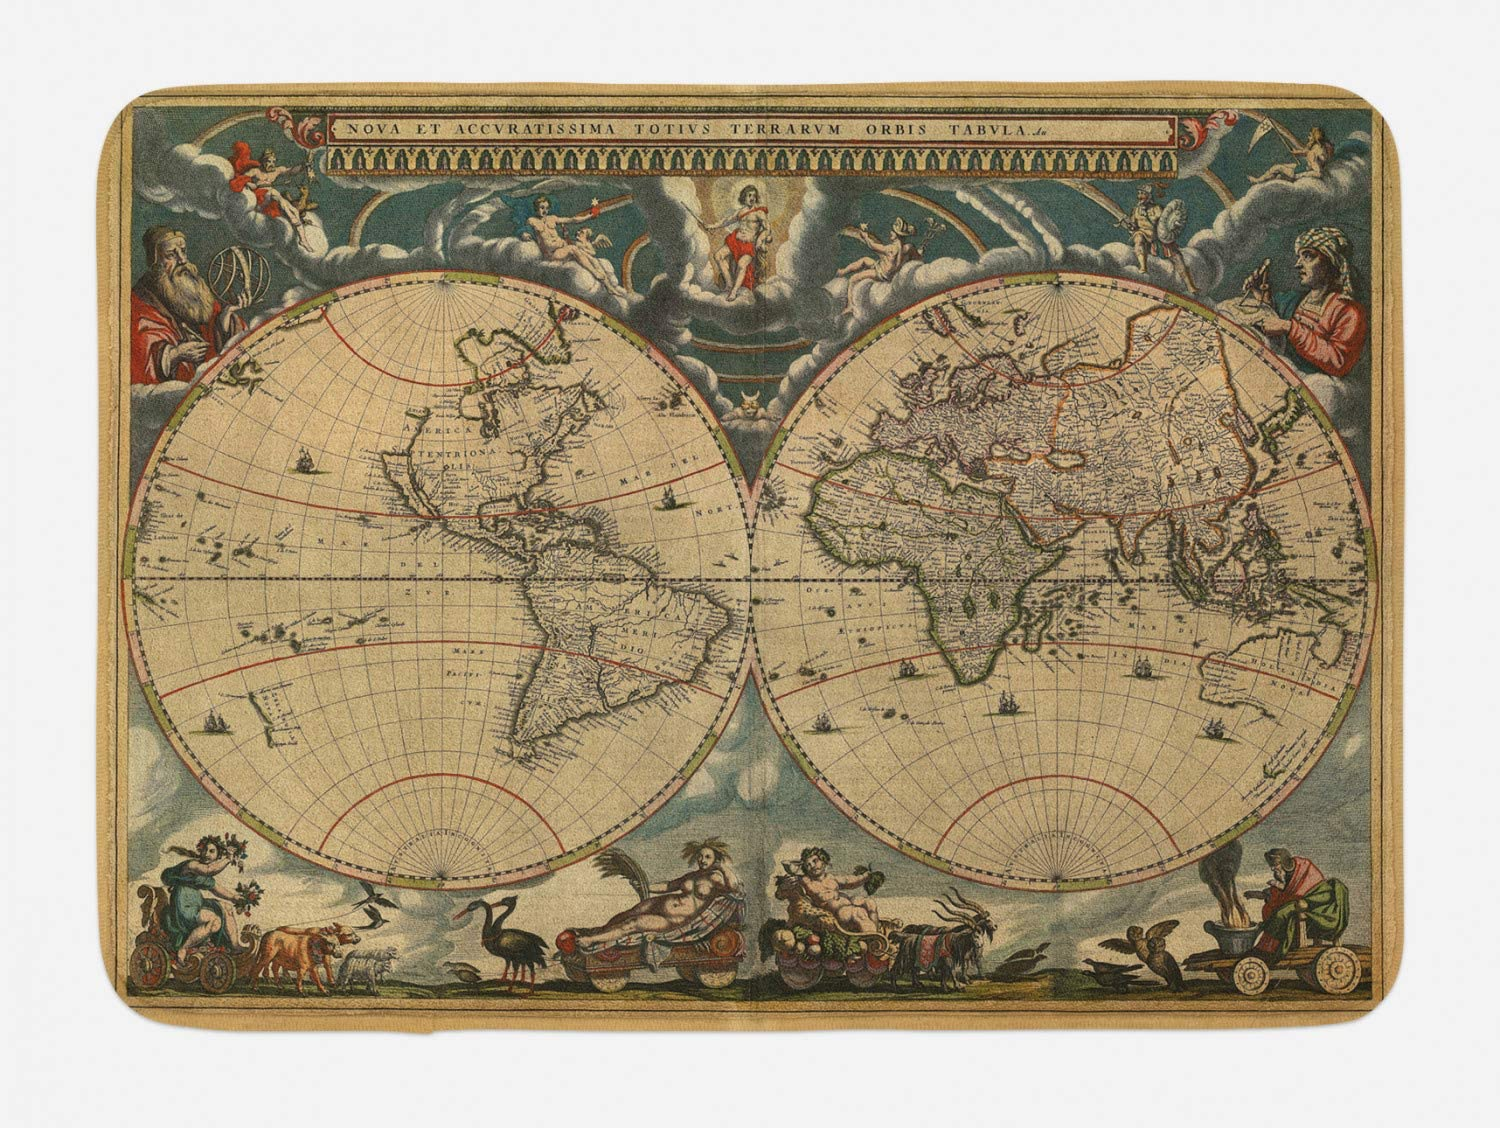 Ambesonne Vintage Bath Mat, Dated Old Map of World Historic Geography Theme Antique Grungy Design Print, Plush Bathroom Decor Mat with Non Slip Backing, 29.5